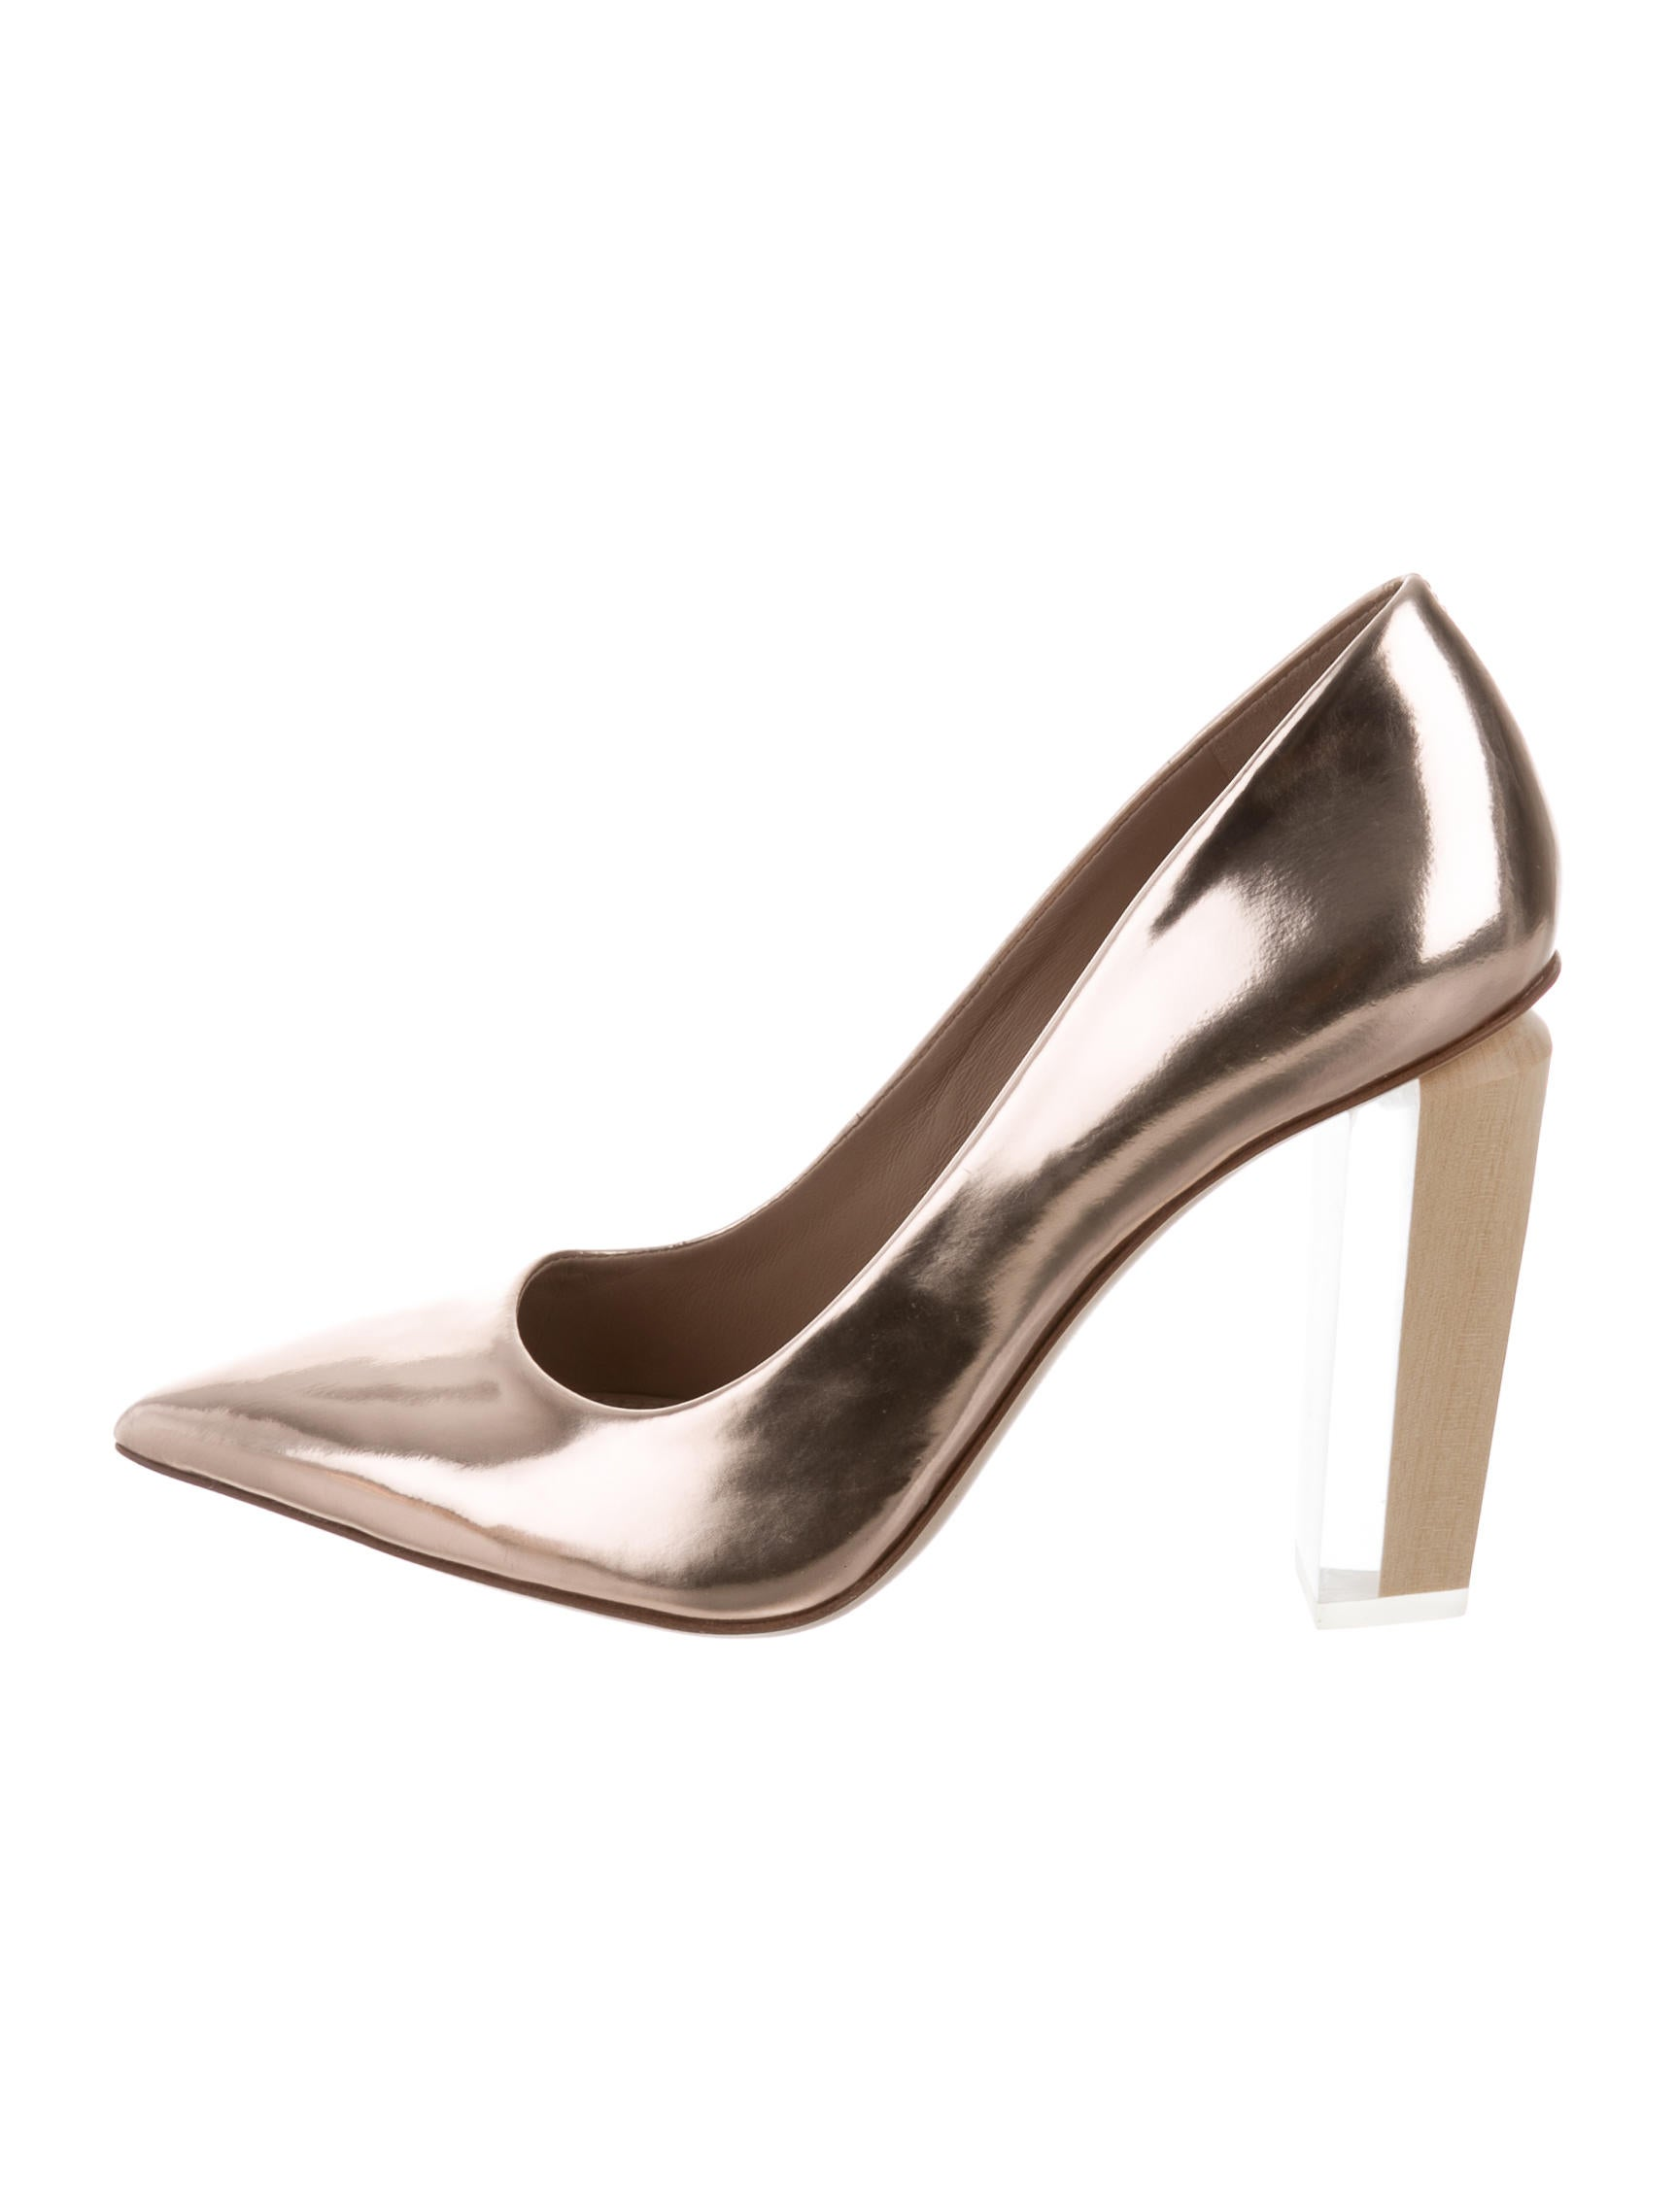 metallic pointed pumps Tory Burch J3s7ZkpSc